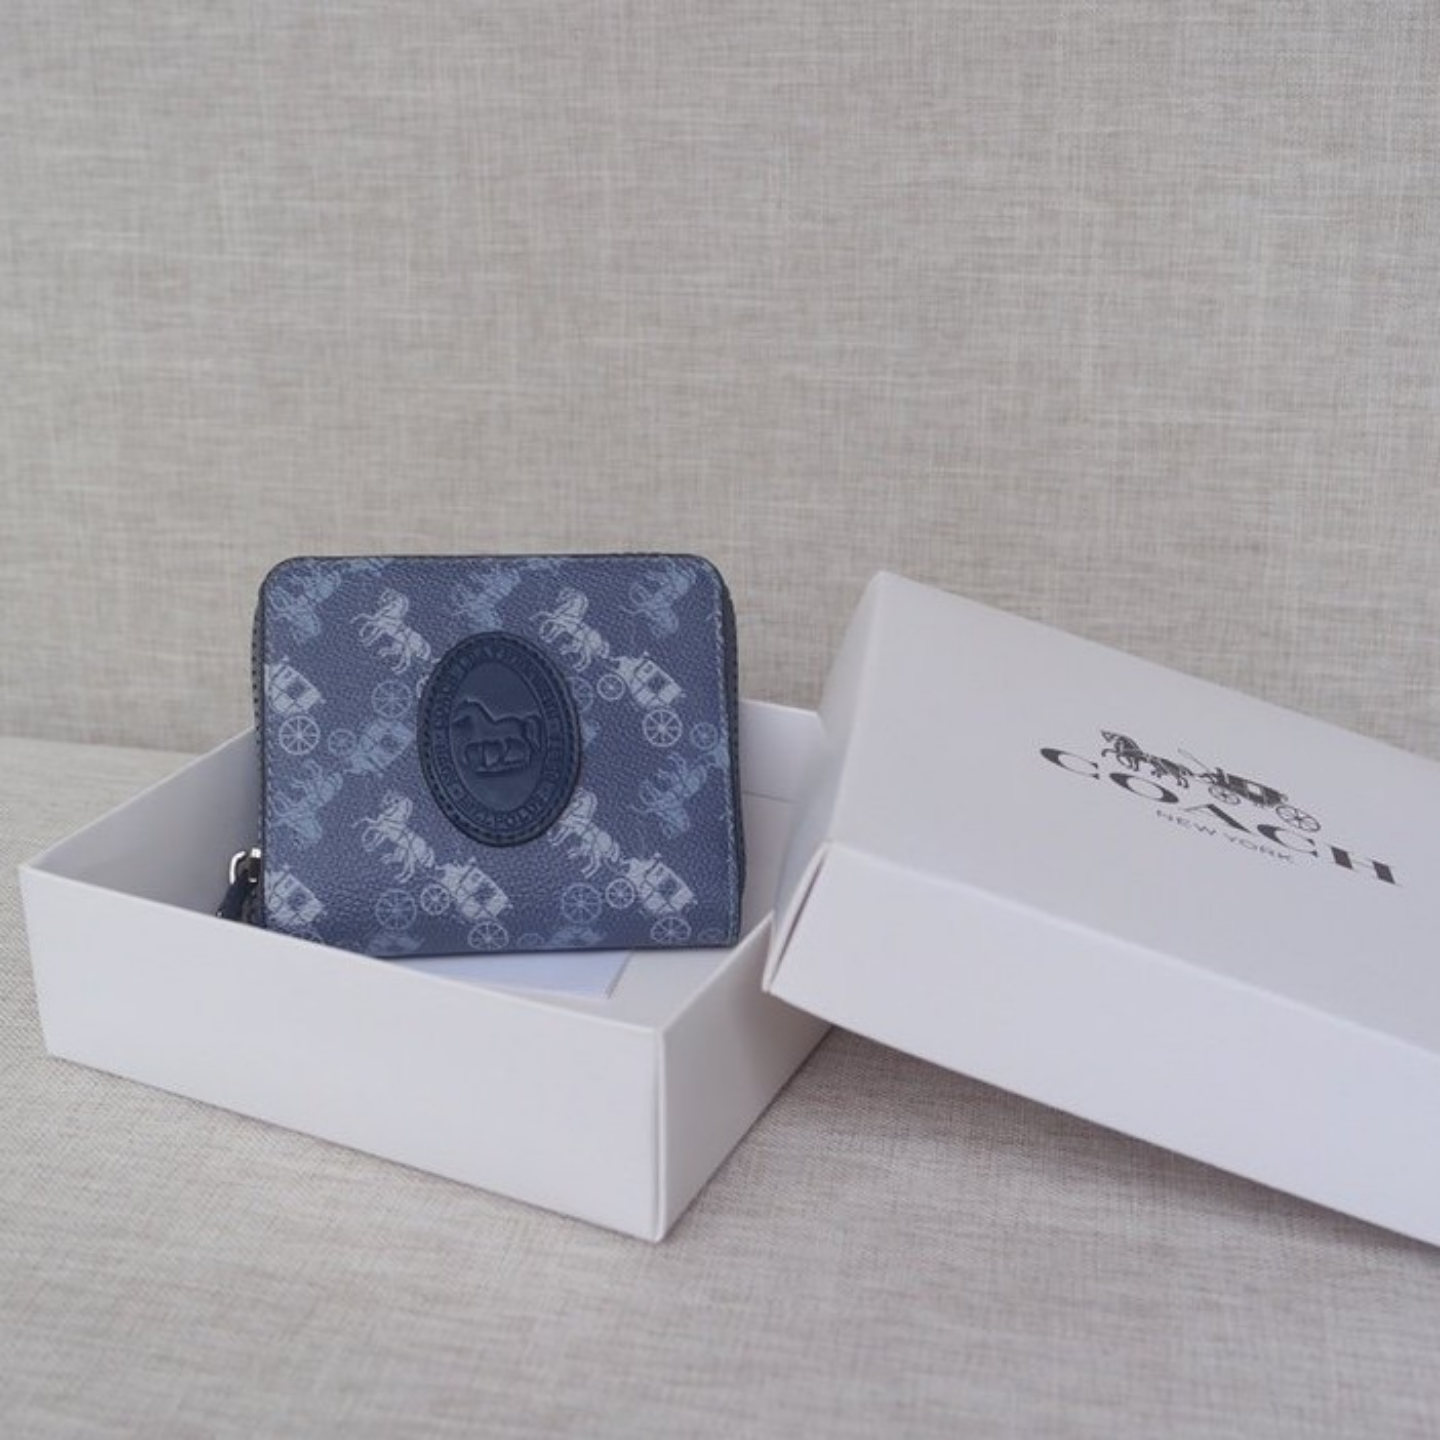 (SG COD) Ladies  Coach   wallet F89375 wallet and cardholder short wallet